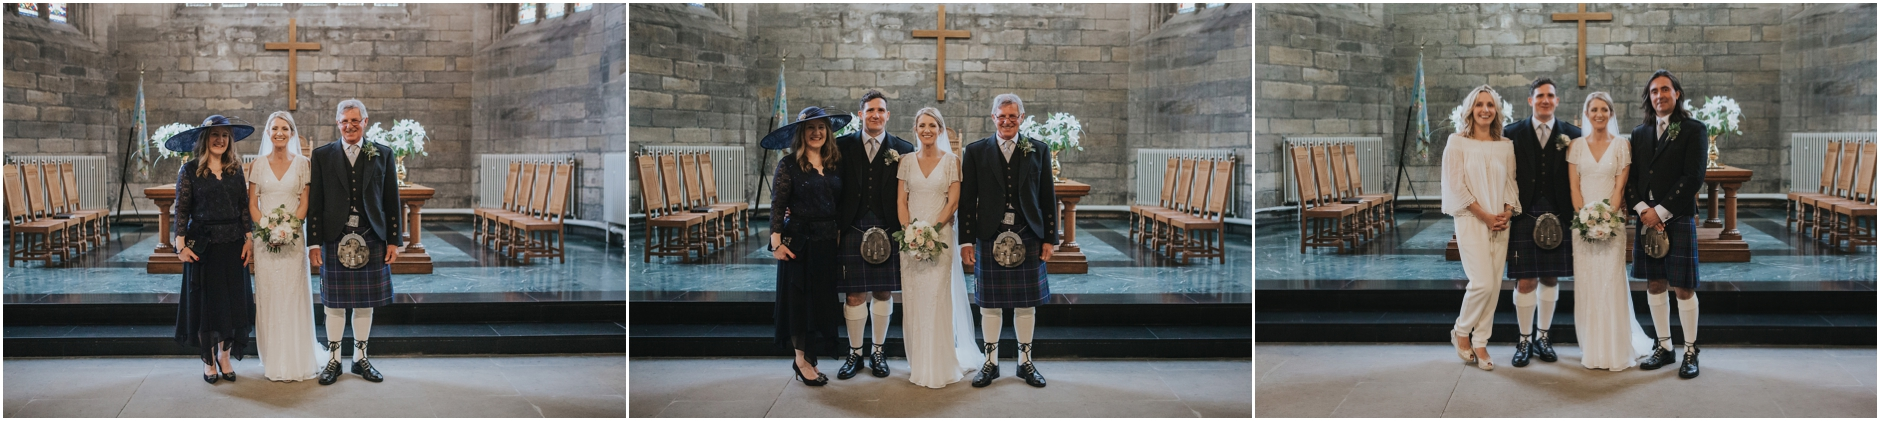 bride and groom on their wedding day at church of the holy rude and cowanes hospital